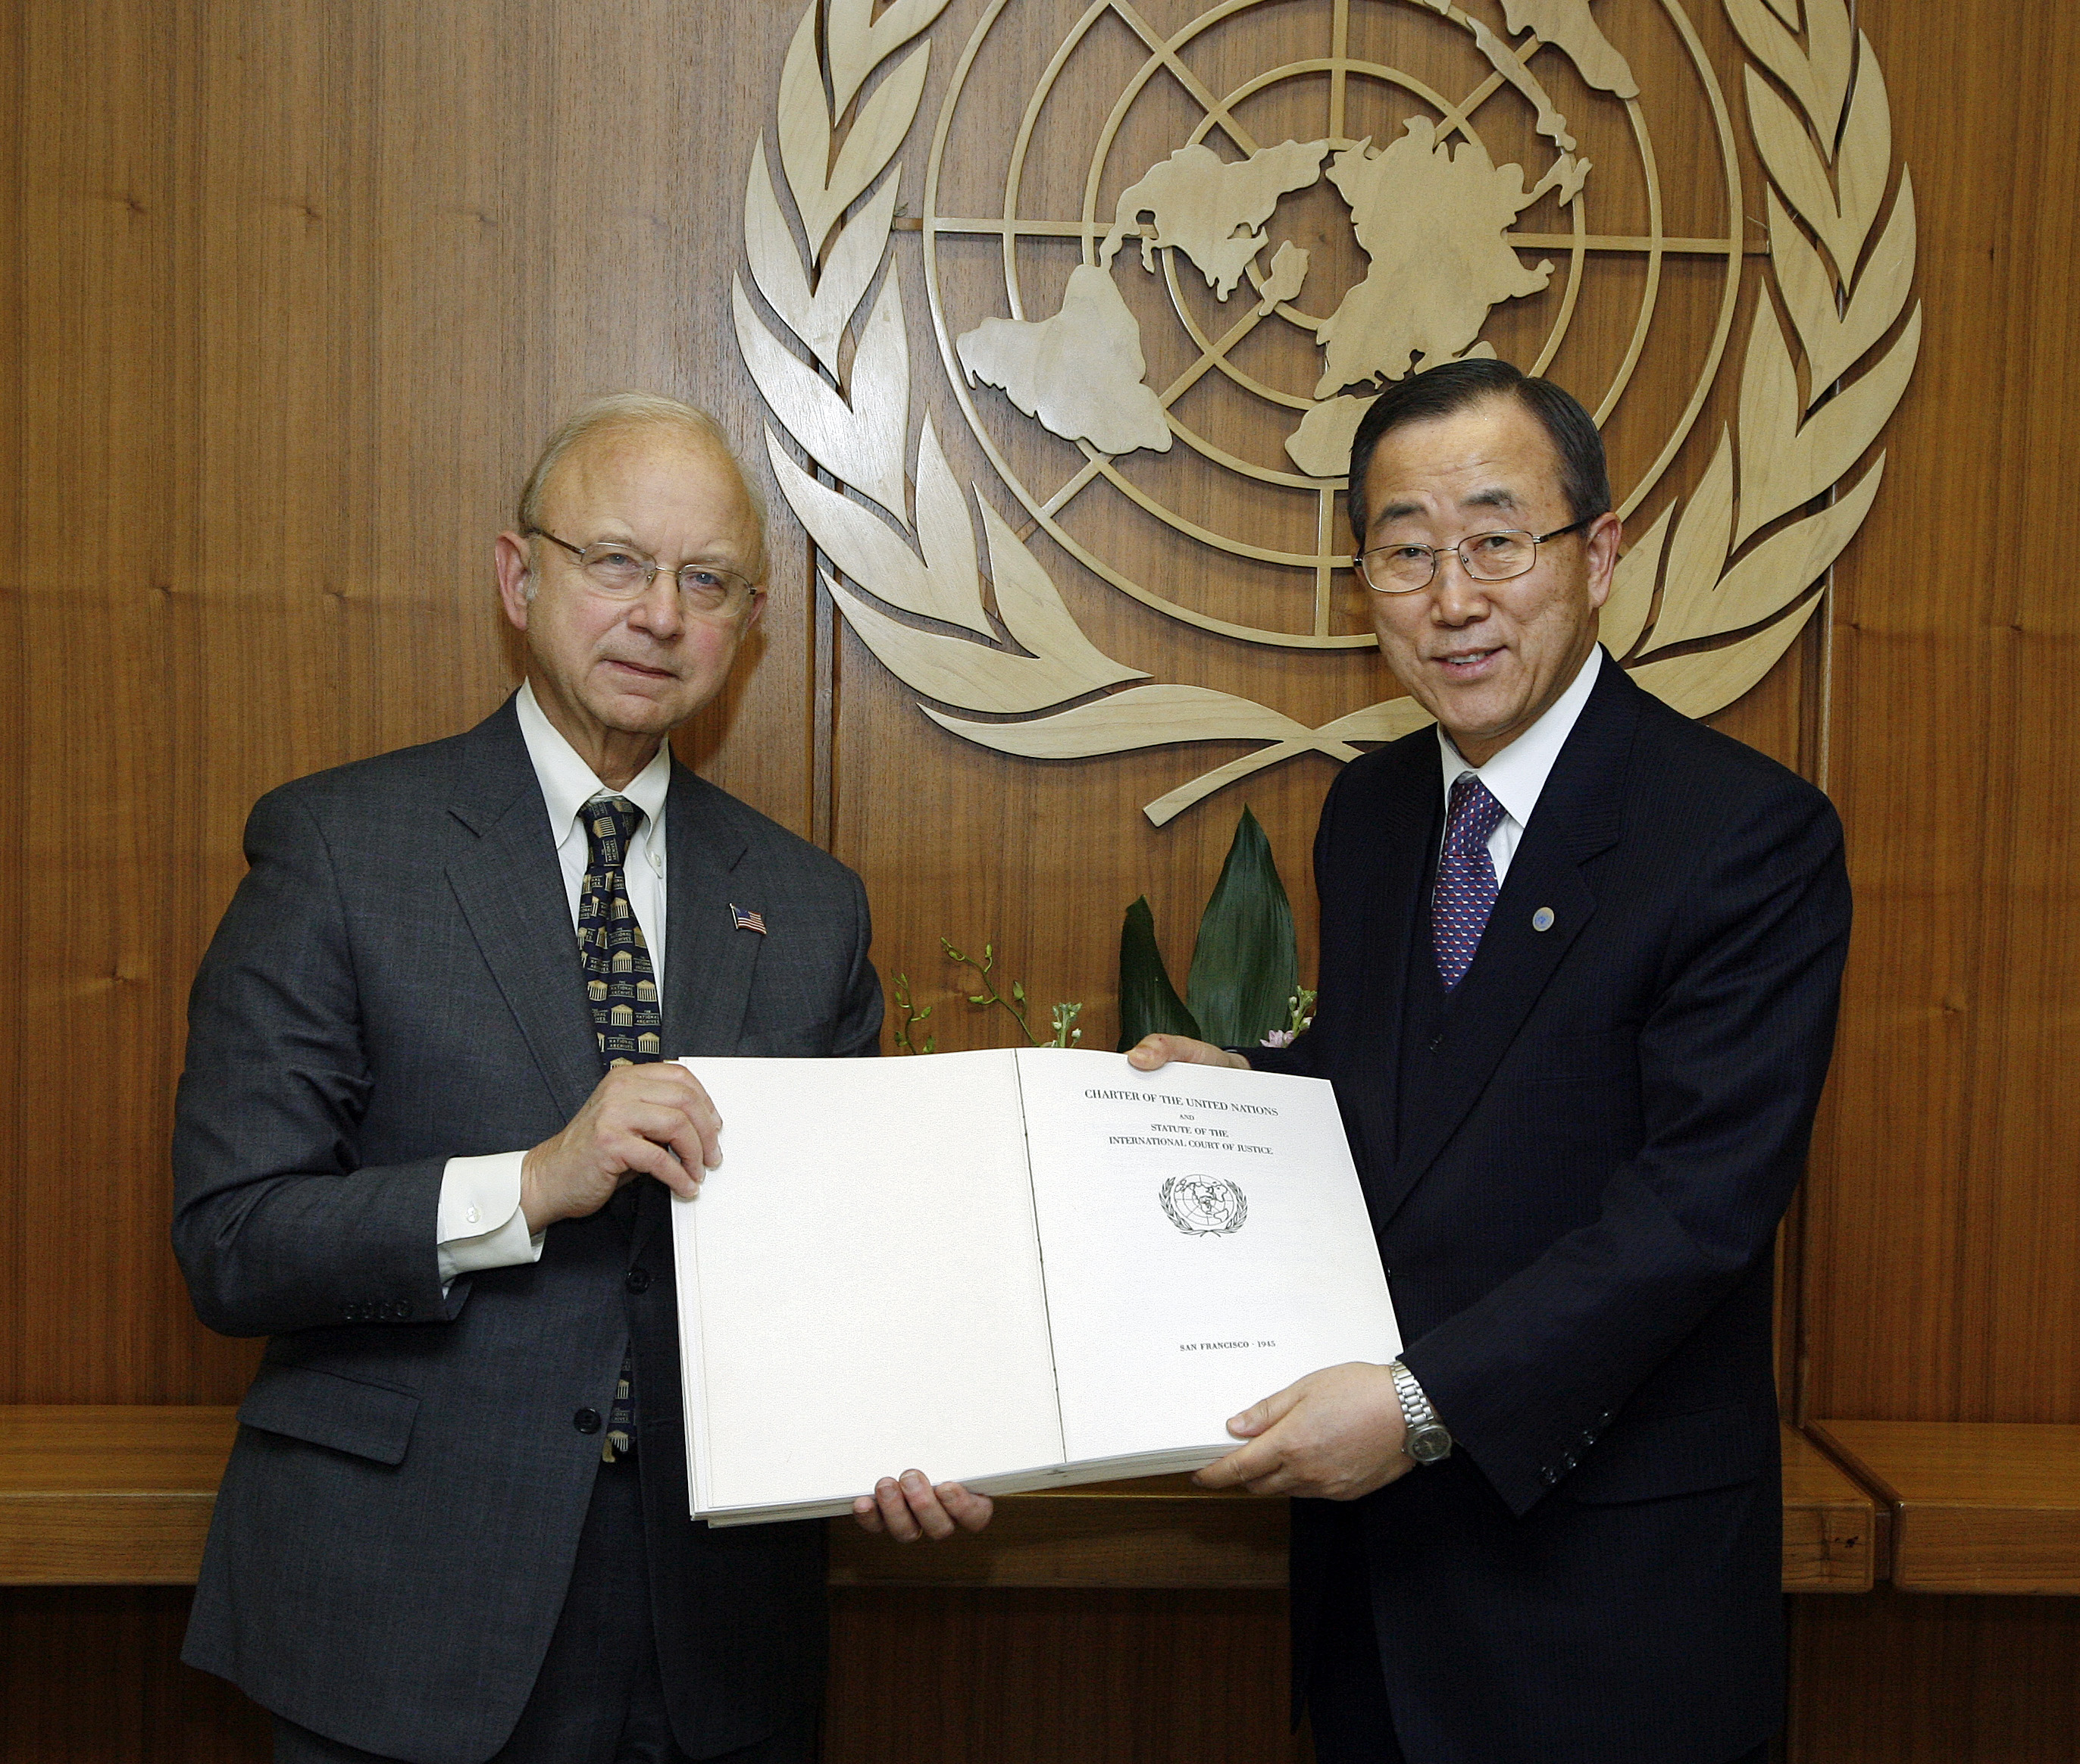 Secretary-General Ban Ki-moon (right) receives a certified copy of the original United Nations Charter from Allen Weinstein, Archivist of the United States National Archives.